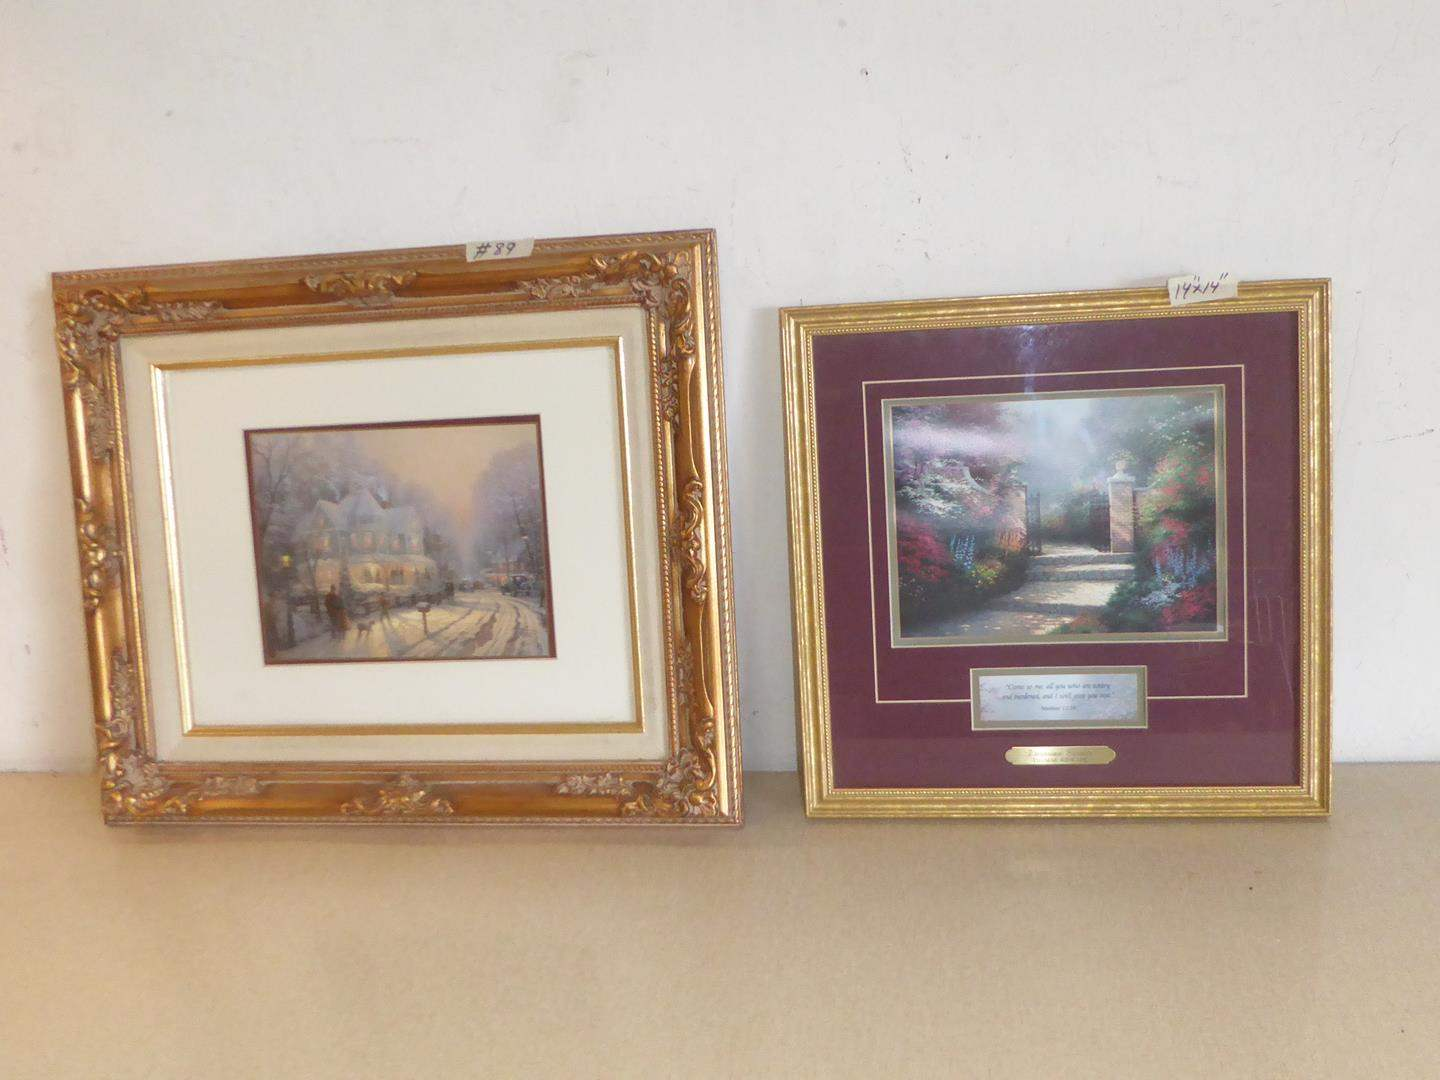 Lot # 89 - Two Beautifully Framed Thomas Kinkade Limited Edition Prints (main image)